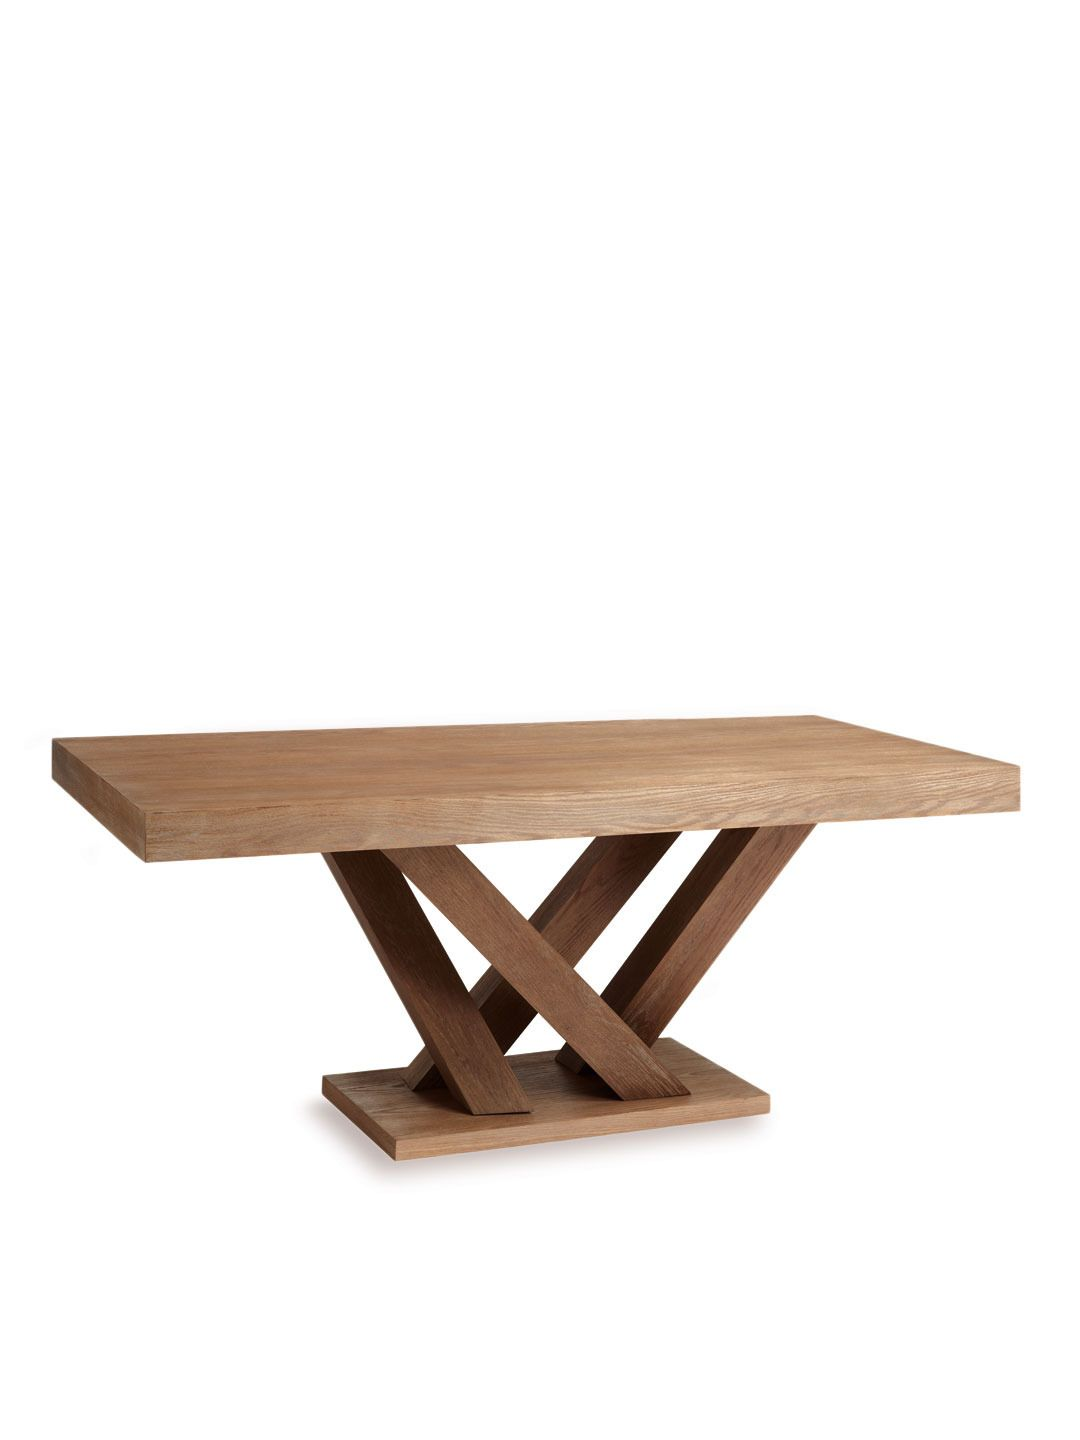 madero dining table pieds de table table basse salle a manger deco maison